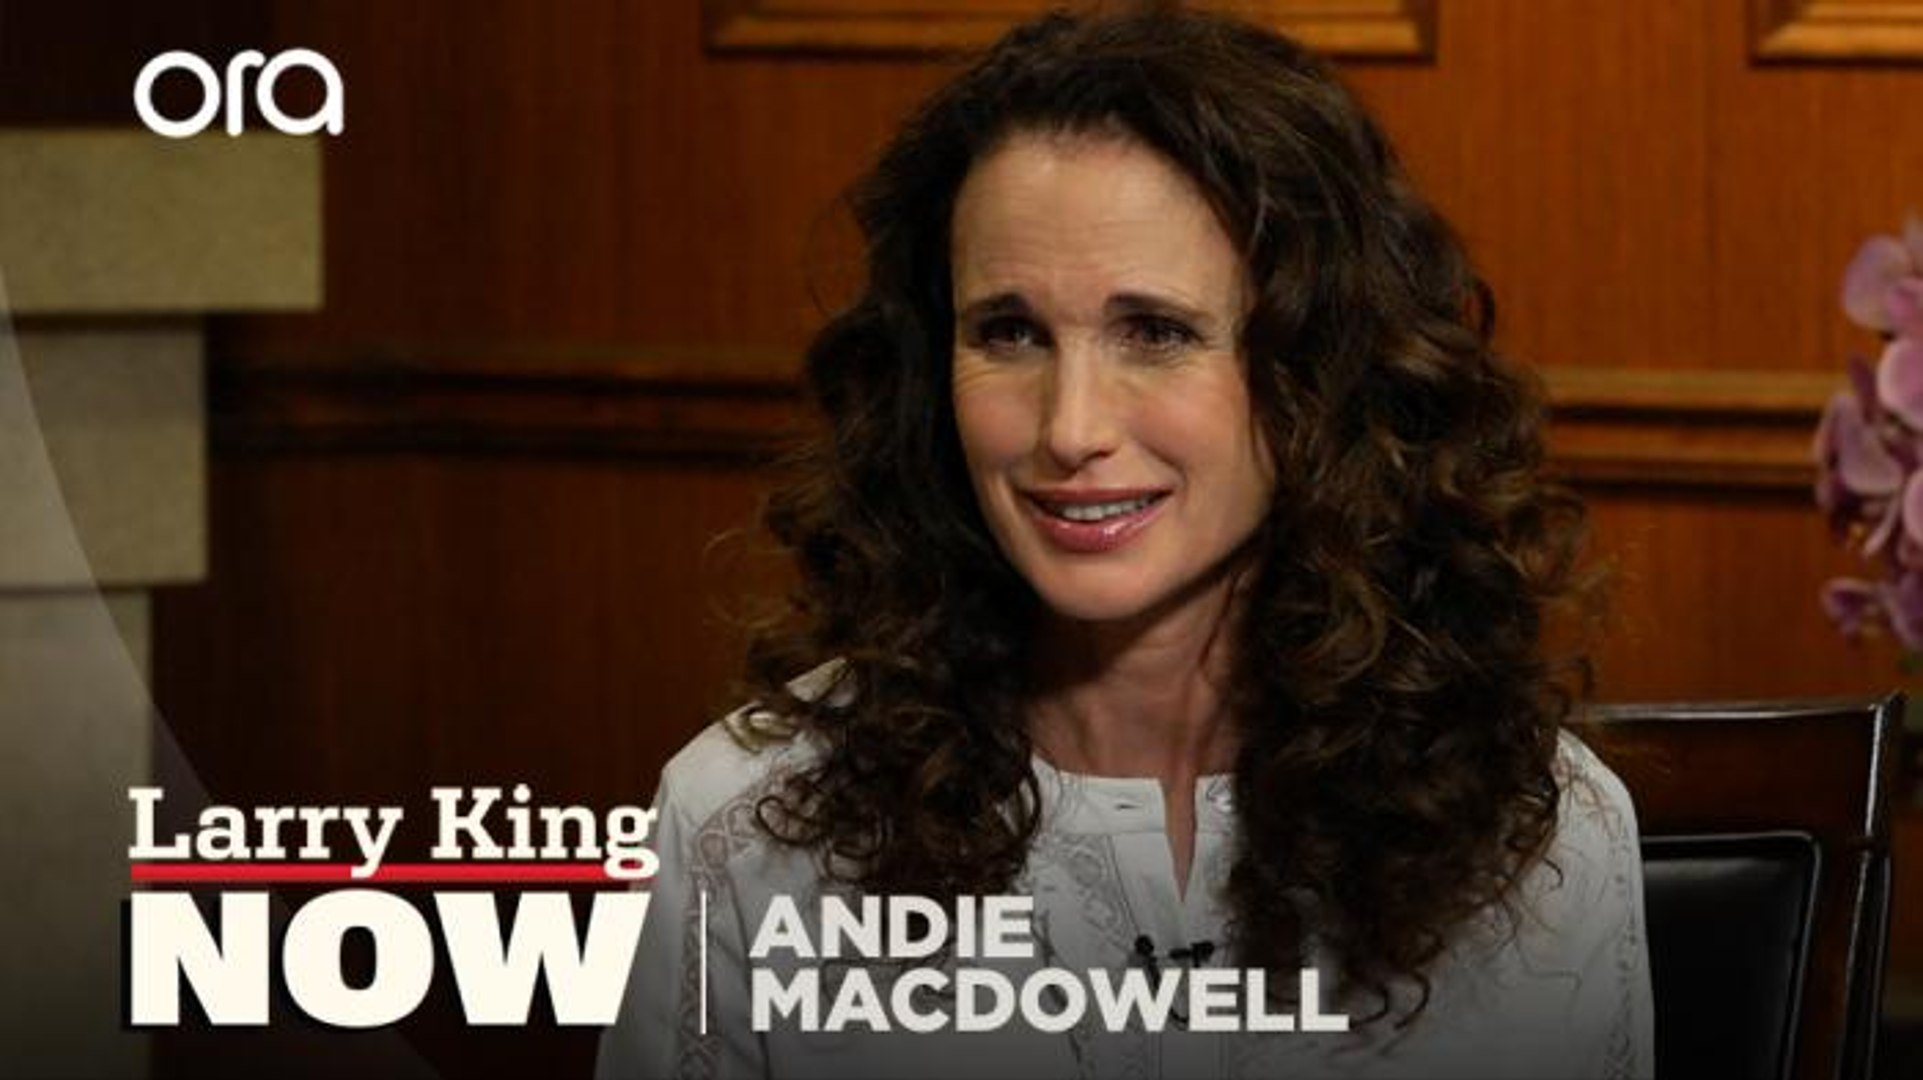 Andie Macdowell Nackt andie macdowell opens up about her first nude scene